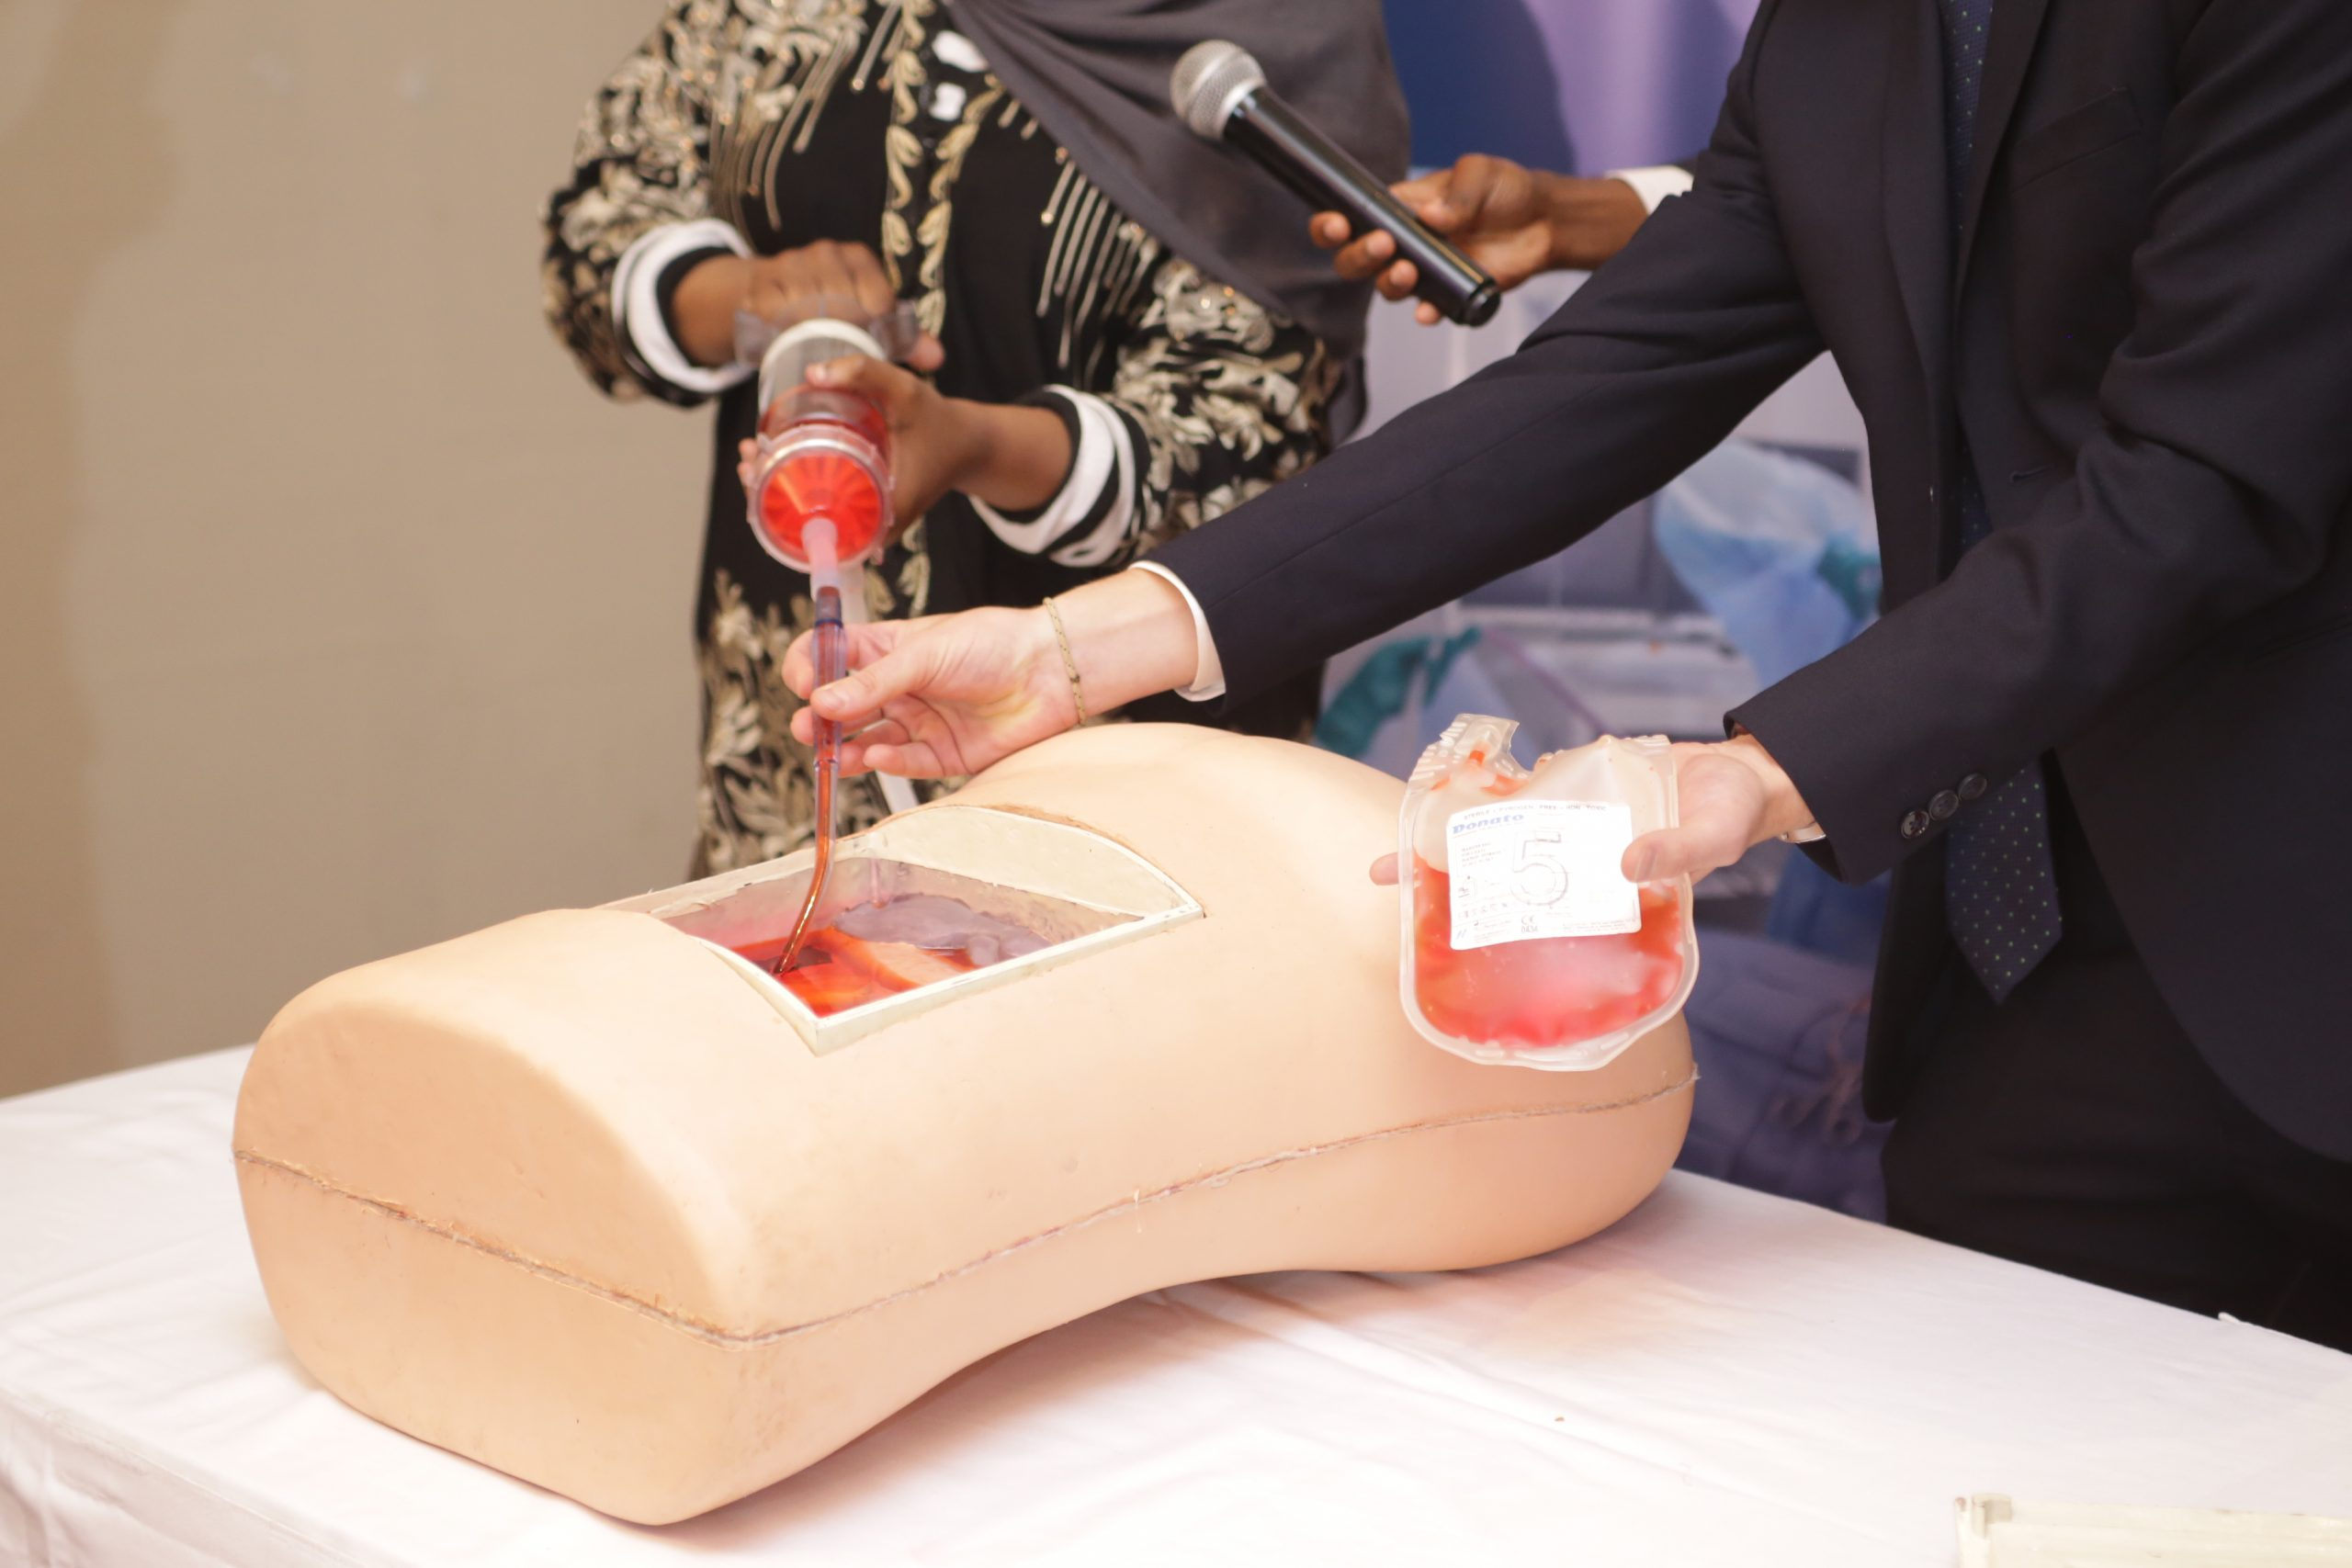 A demonstration of how Hemafuse works. Hemafuse is, an autotransfusion medical device that allows for blood to be retransfused into a patient who is undergoing surgery. www.businesstoday.co.ke